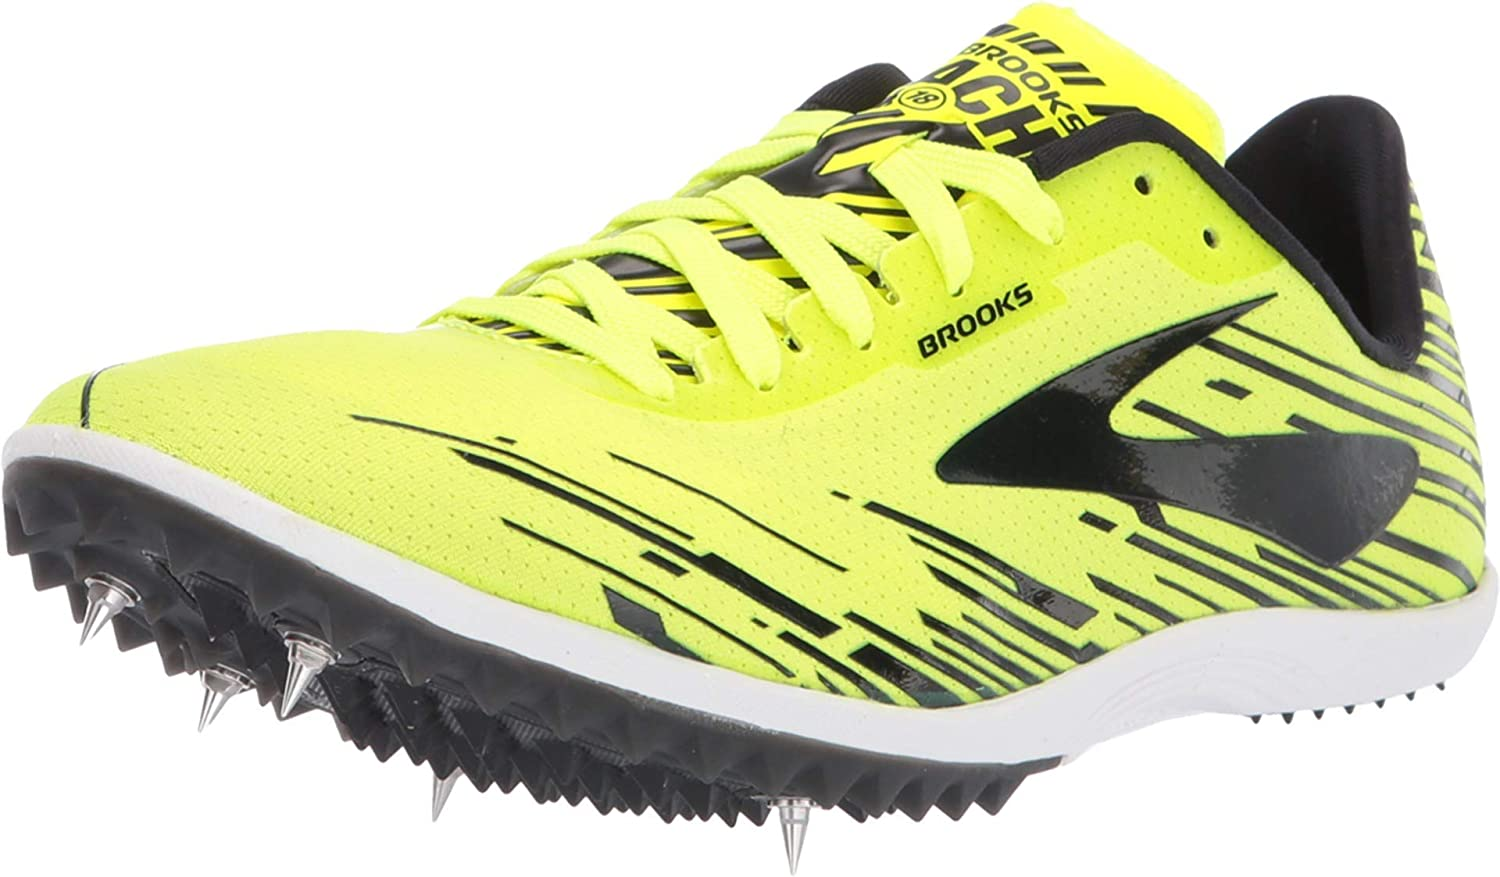 BROOKS MACH 18 MENS CROSS COUNTRY MUD RUNNING SHOES SPIKES 7 8 9 10 11 12 13